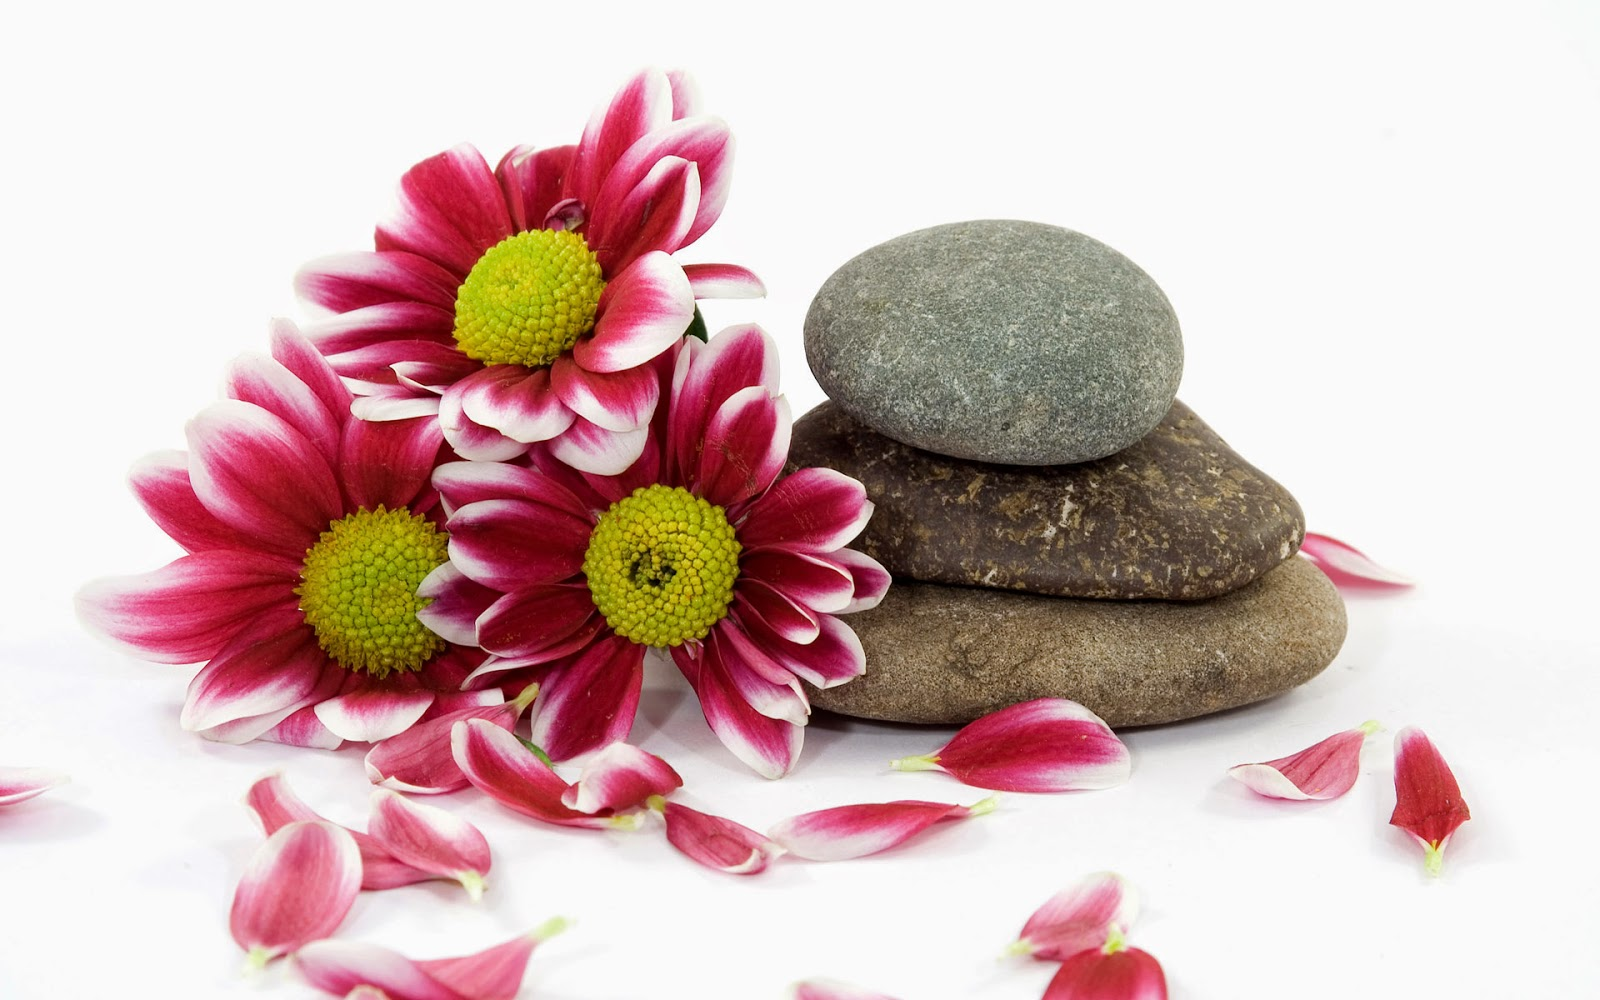 HD-Zen-stone-with-flowers-white-BG-HD-pictures-1920x1200.jpg